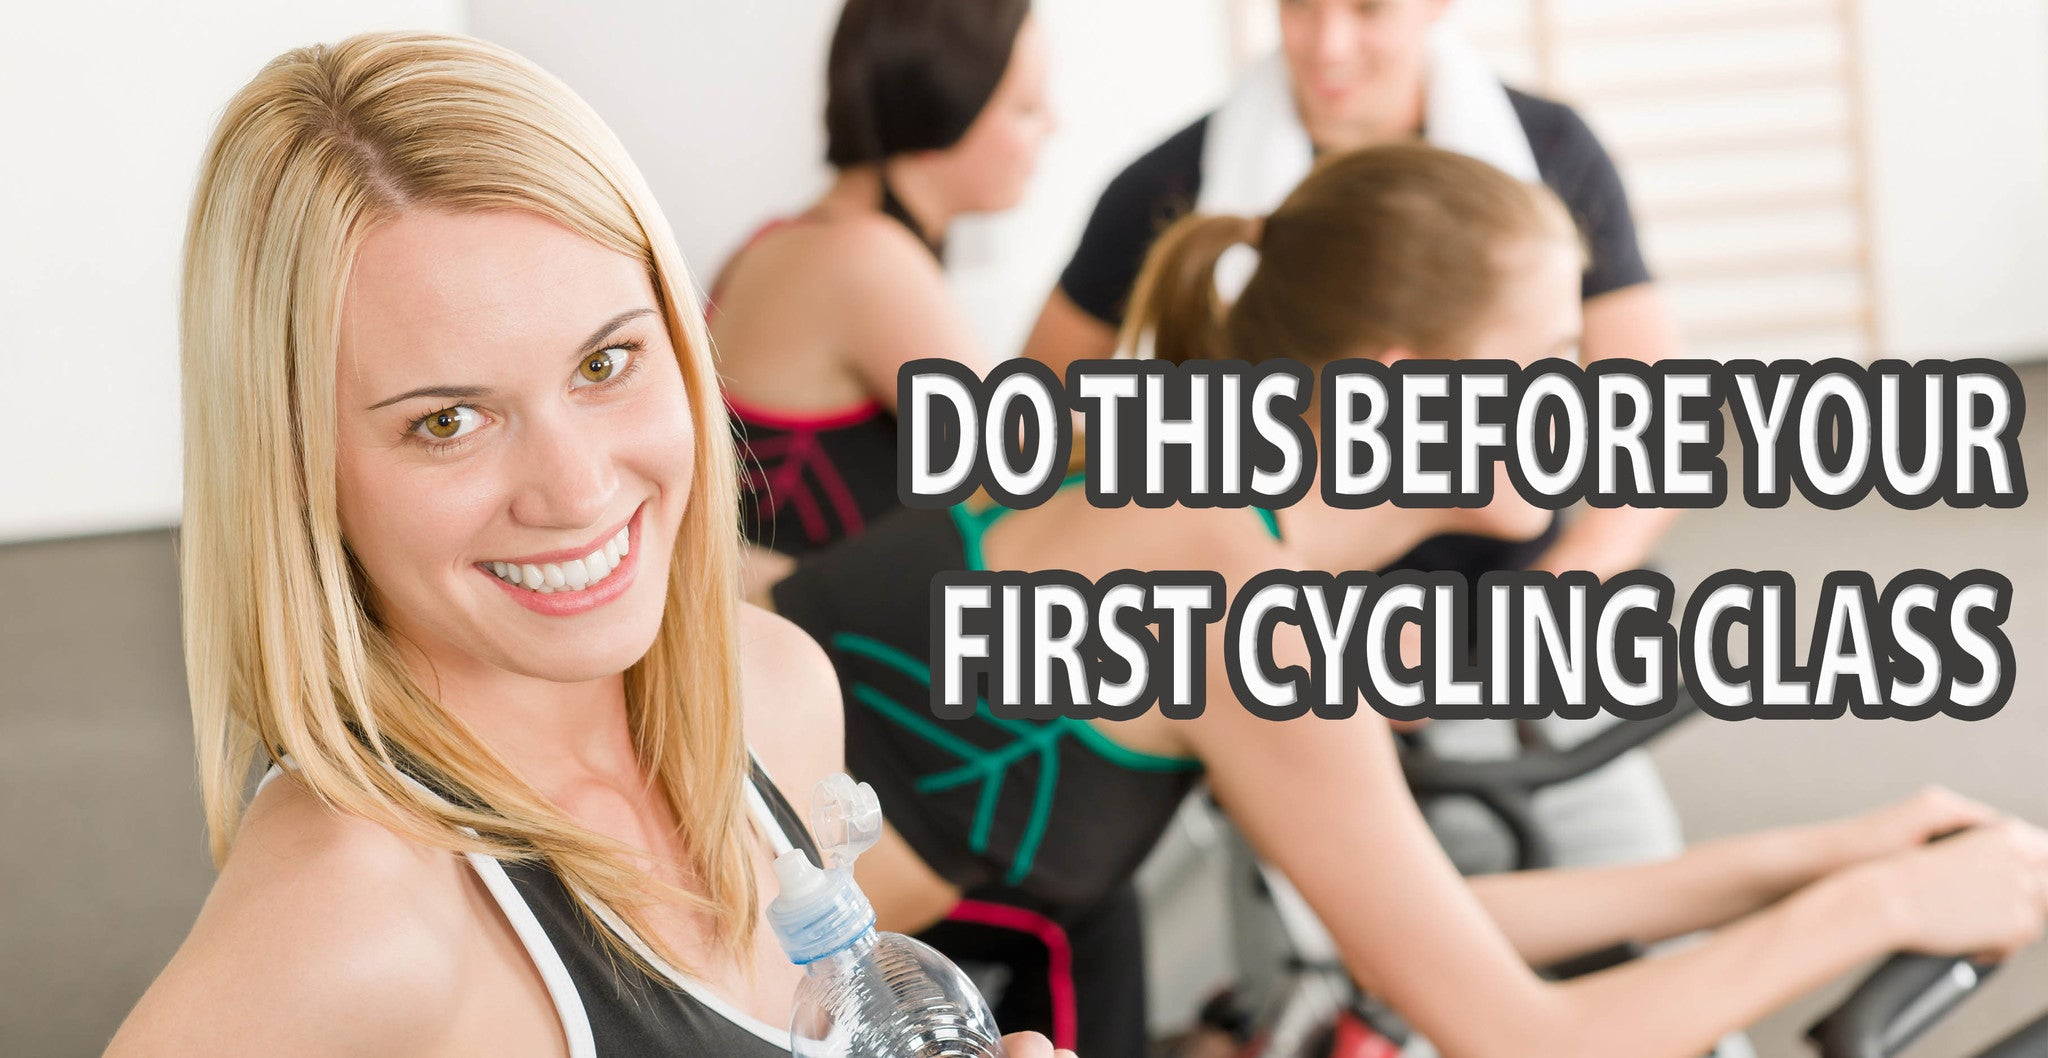 Your first Cycling Class? Here's what you should do